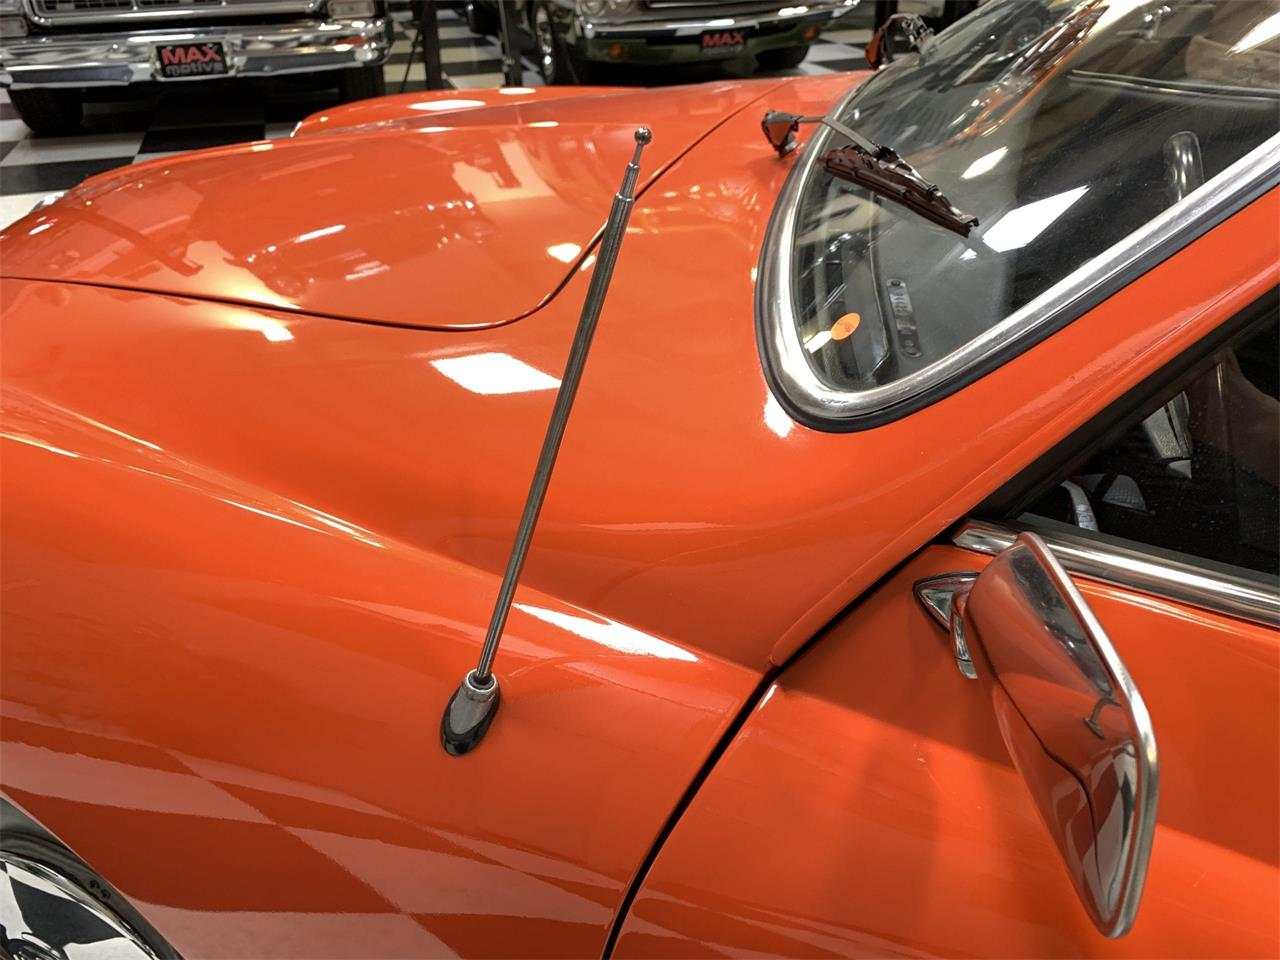 1974 Volkswagen Karmann Ghia for sale in Pittsburgh, PA – photo 23